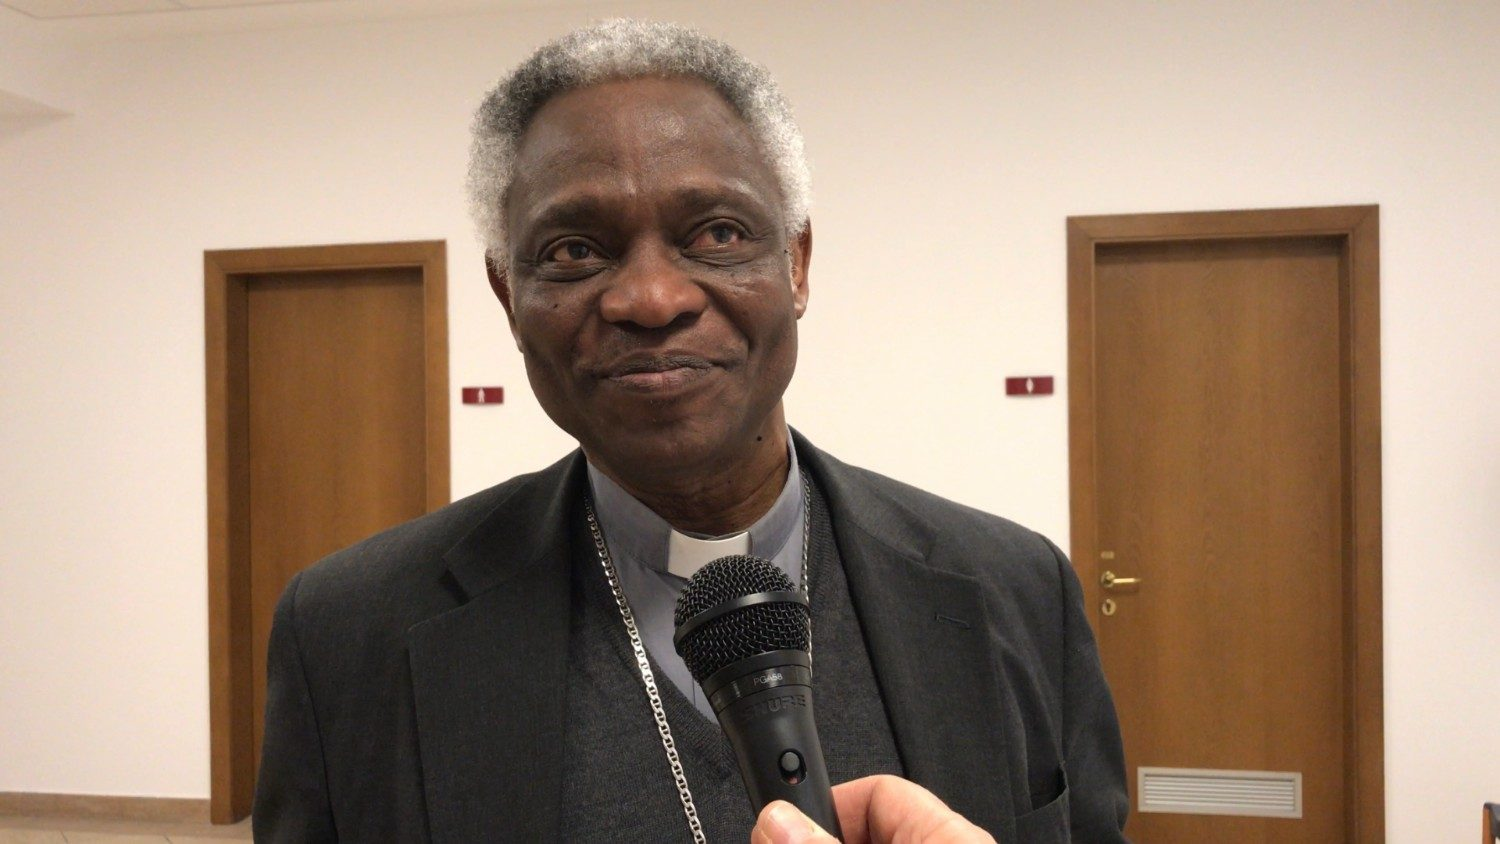 Vatican conference to study role of religions in SDGs - Vatican News